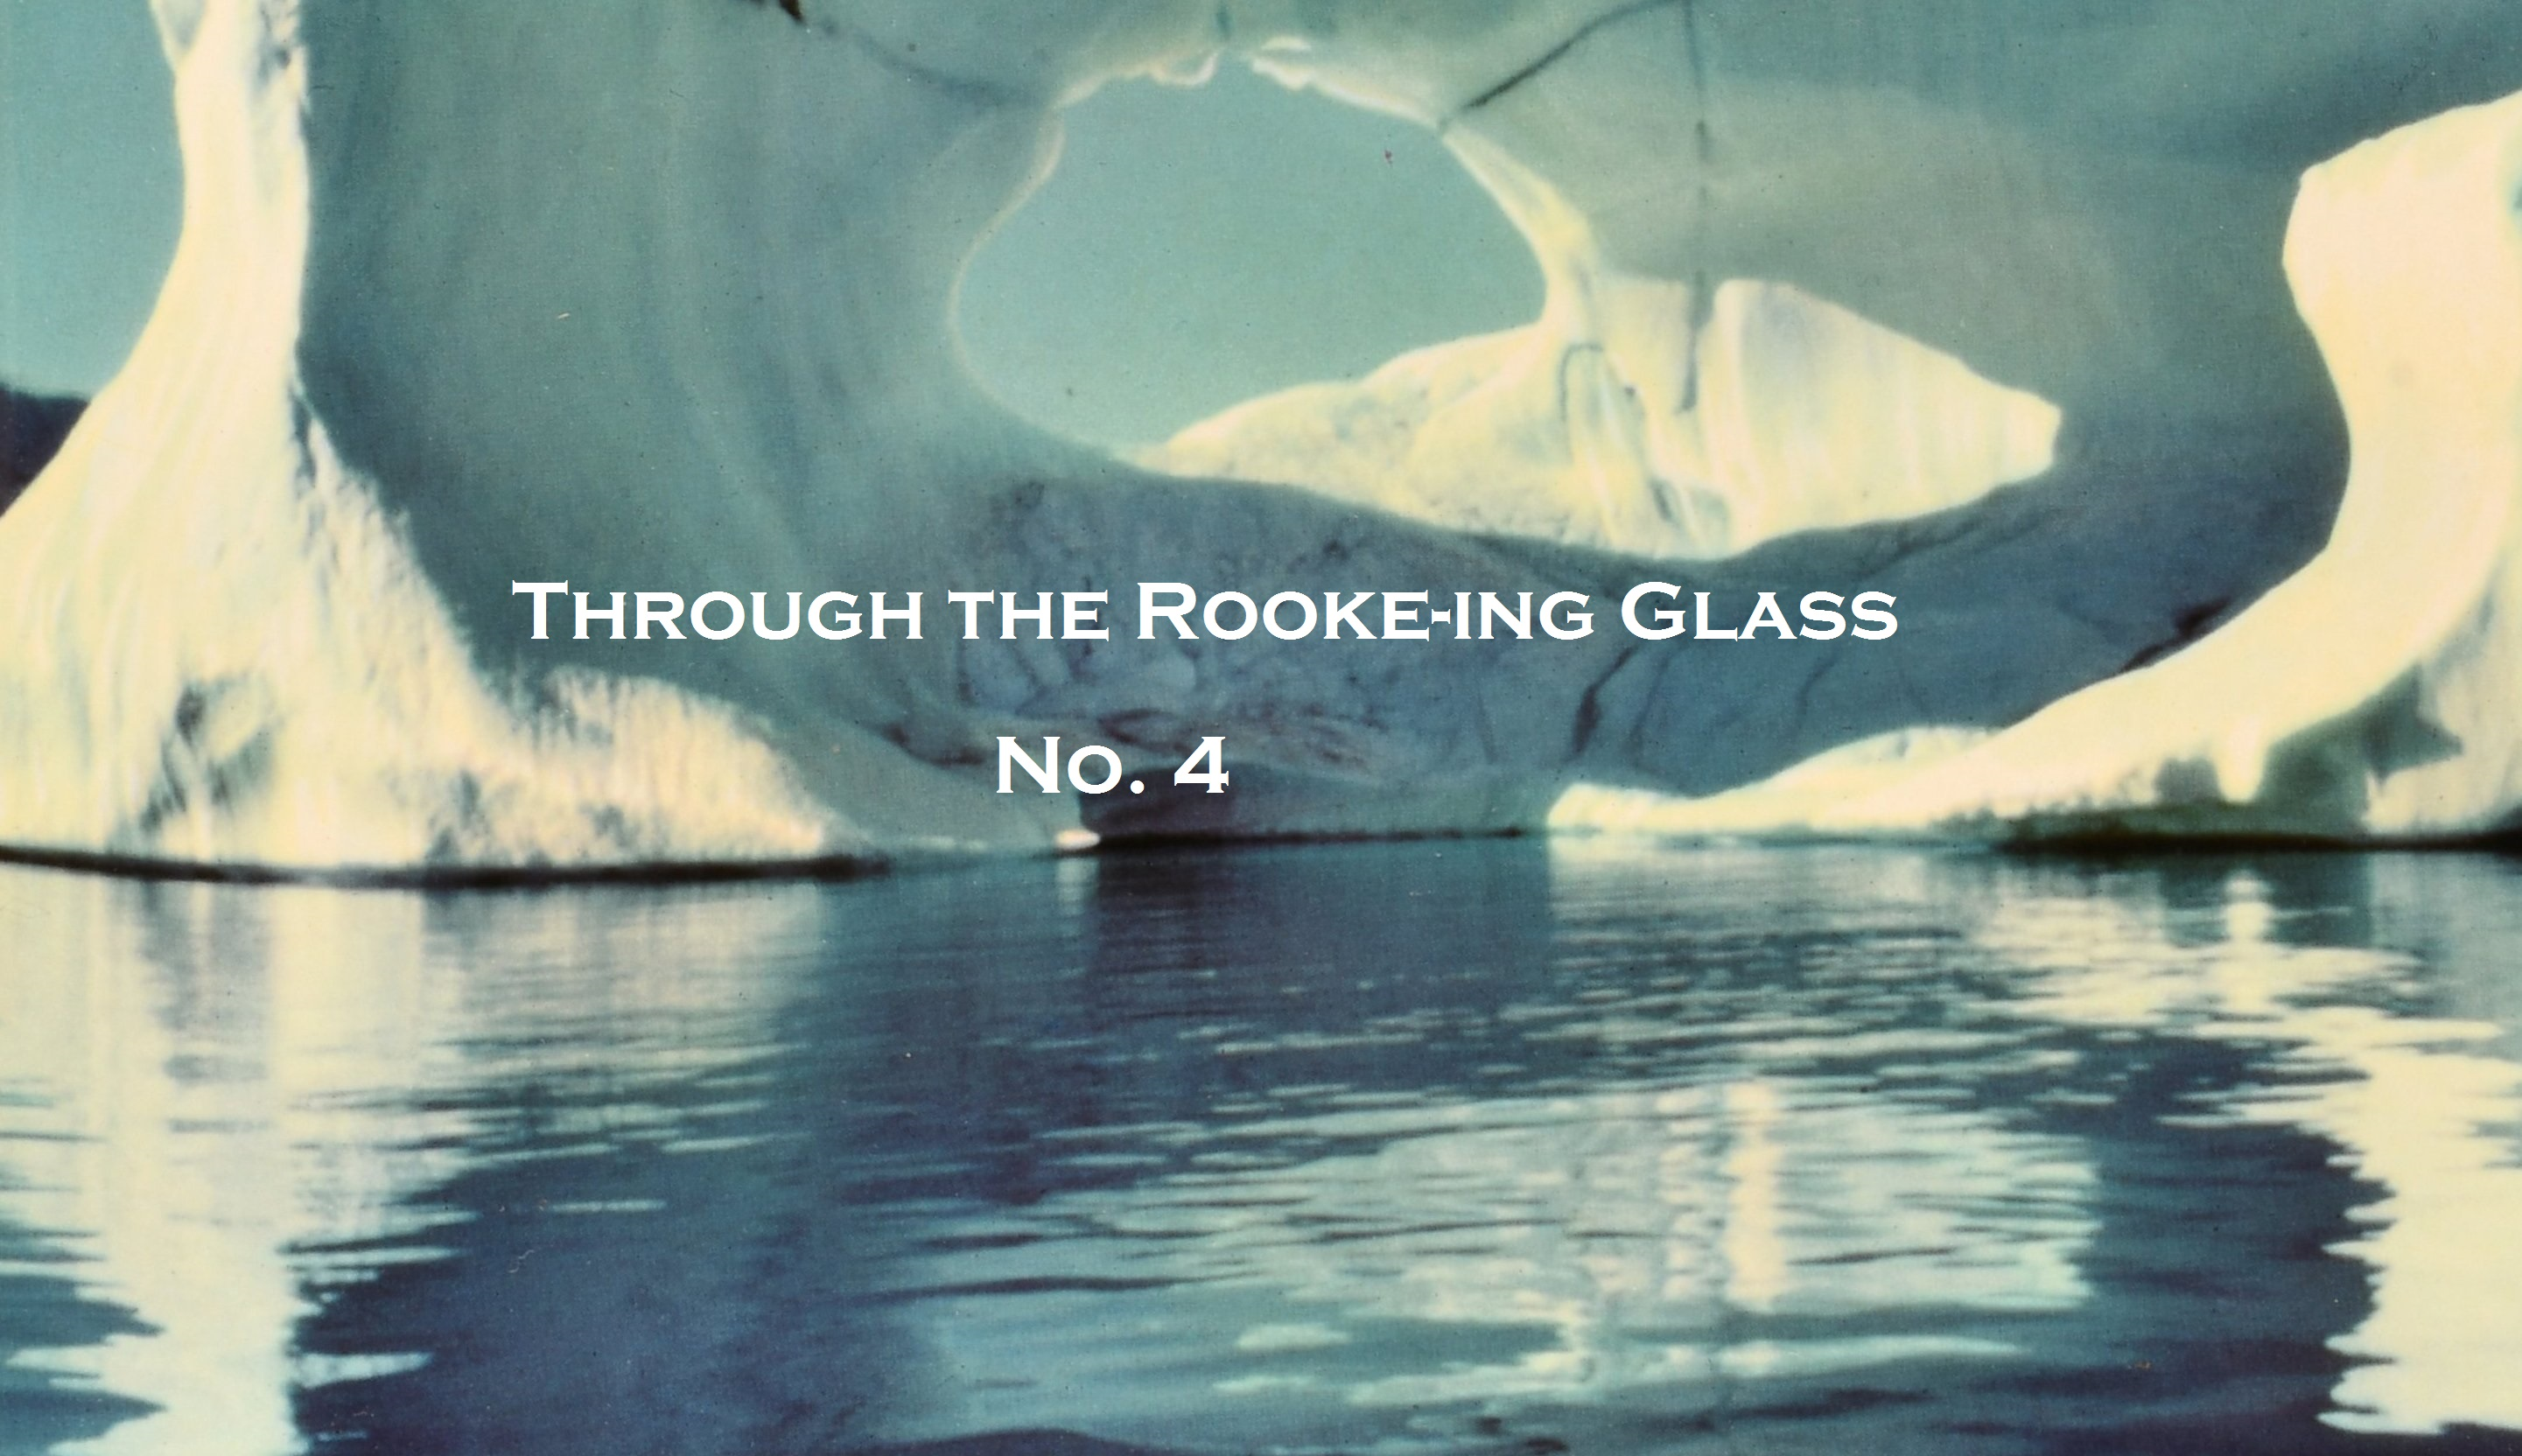 Through the Rooke-ing Glass No. 4: An Odyssey